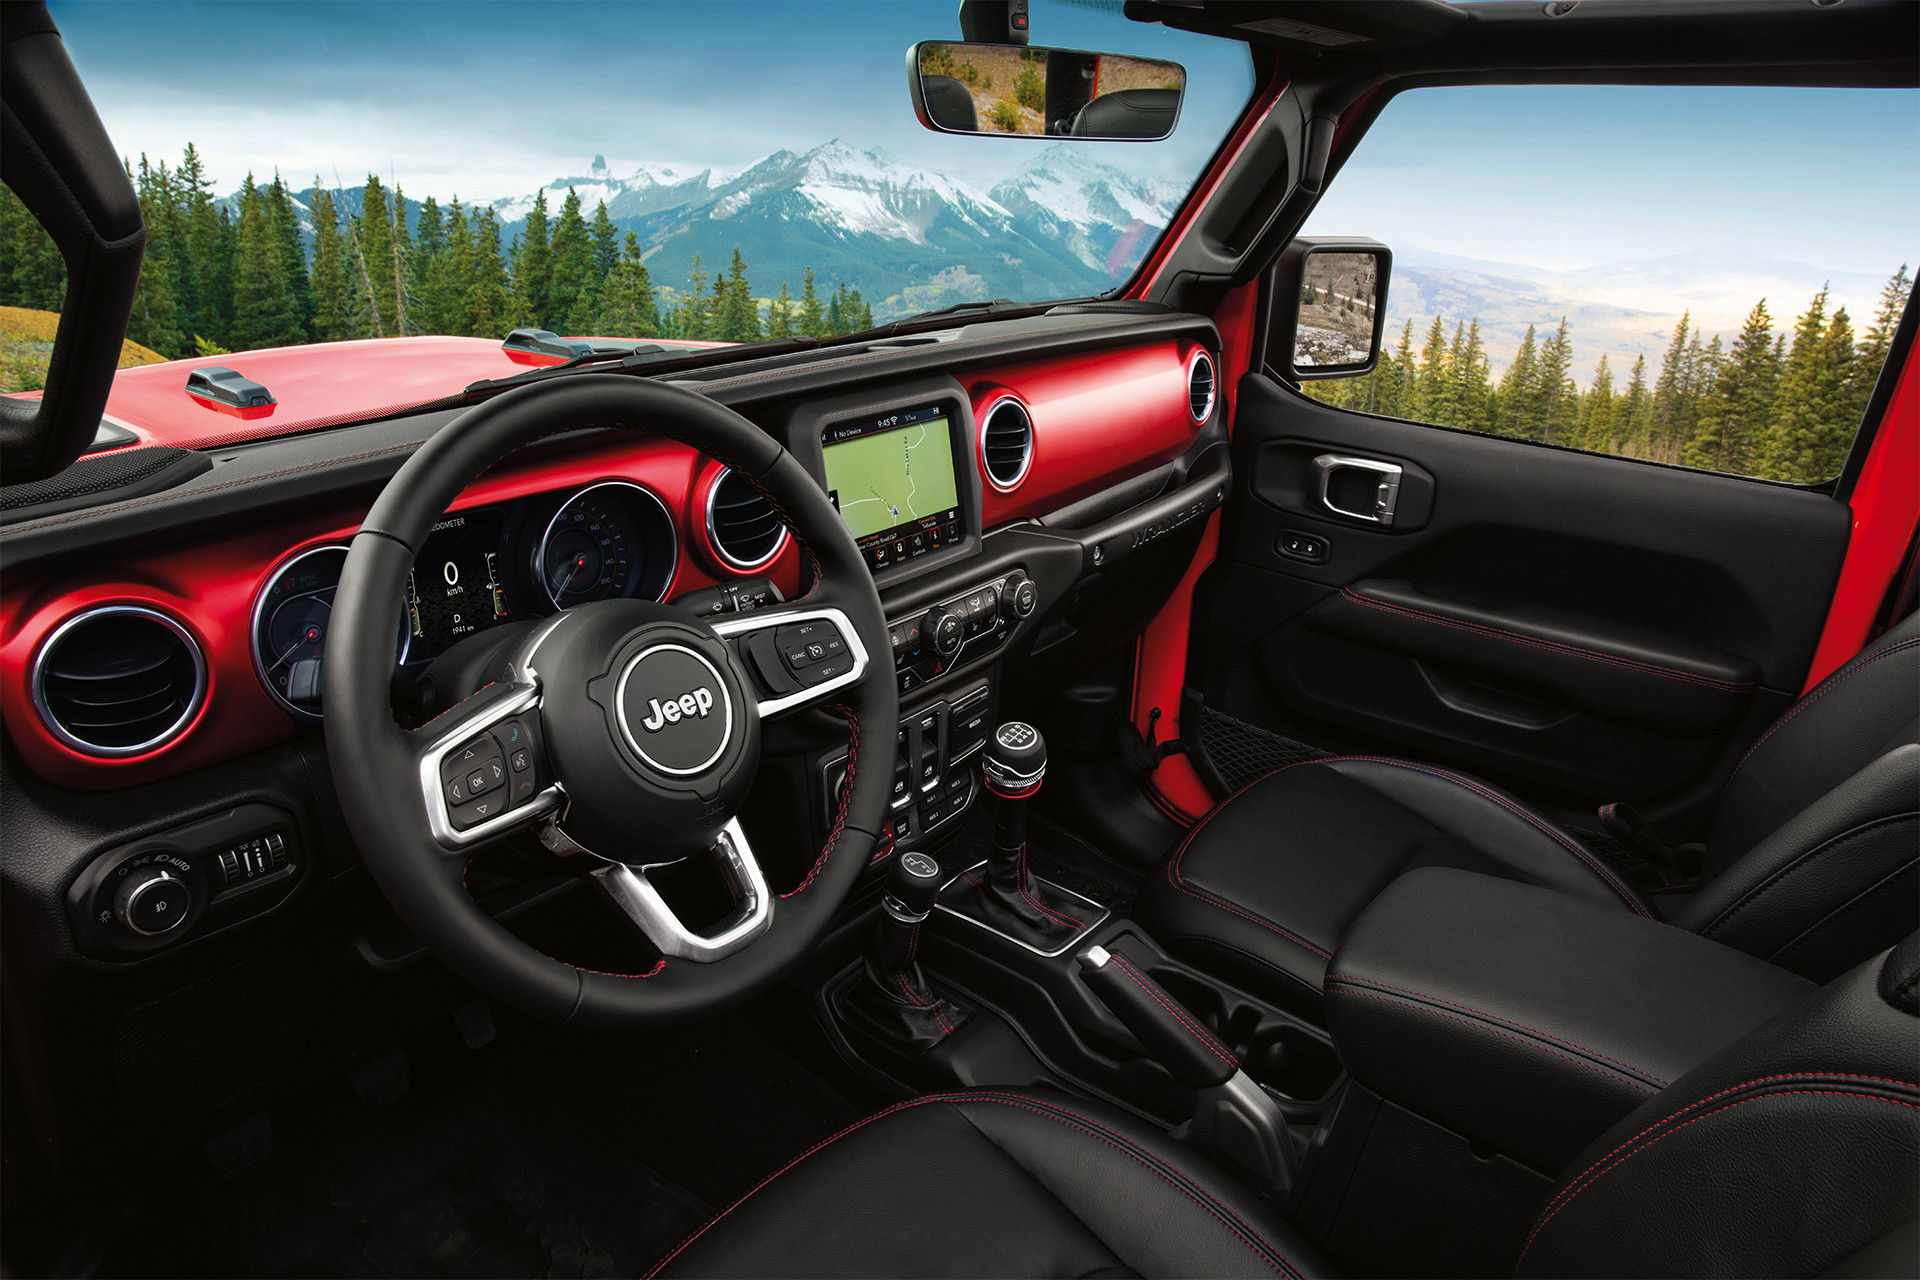 2019 Jeep Wrangler Rubicon interior showing front bucket seats with red stitching and jeep grille logo